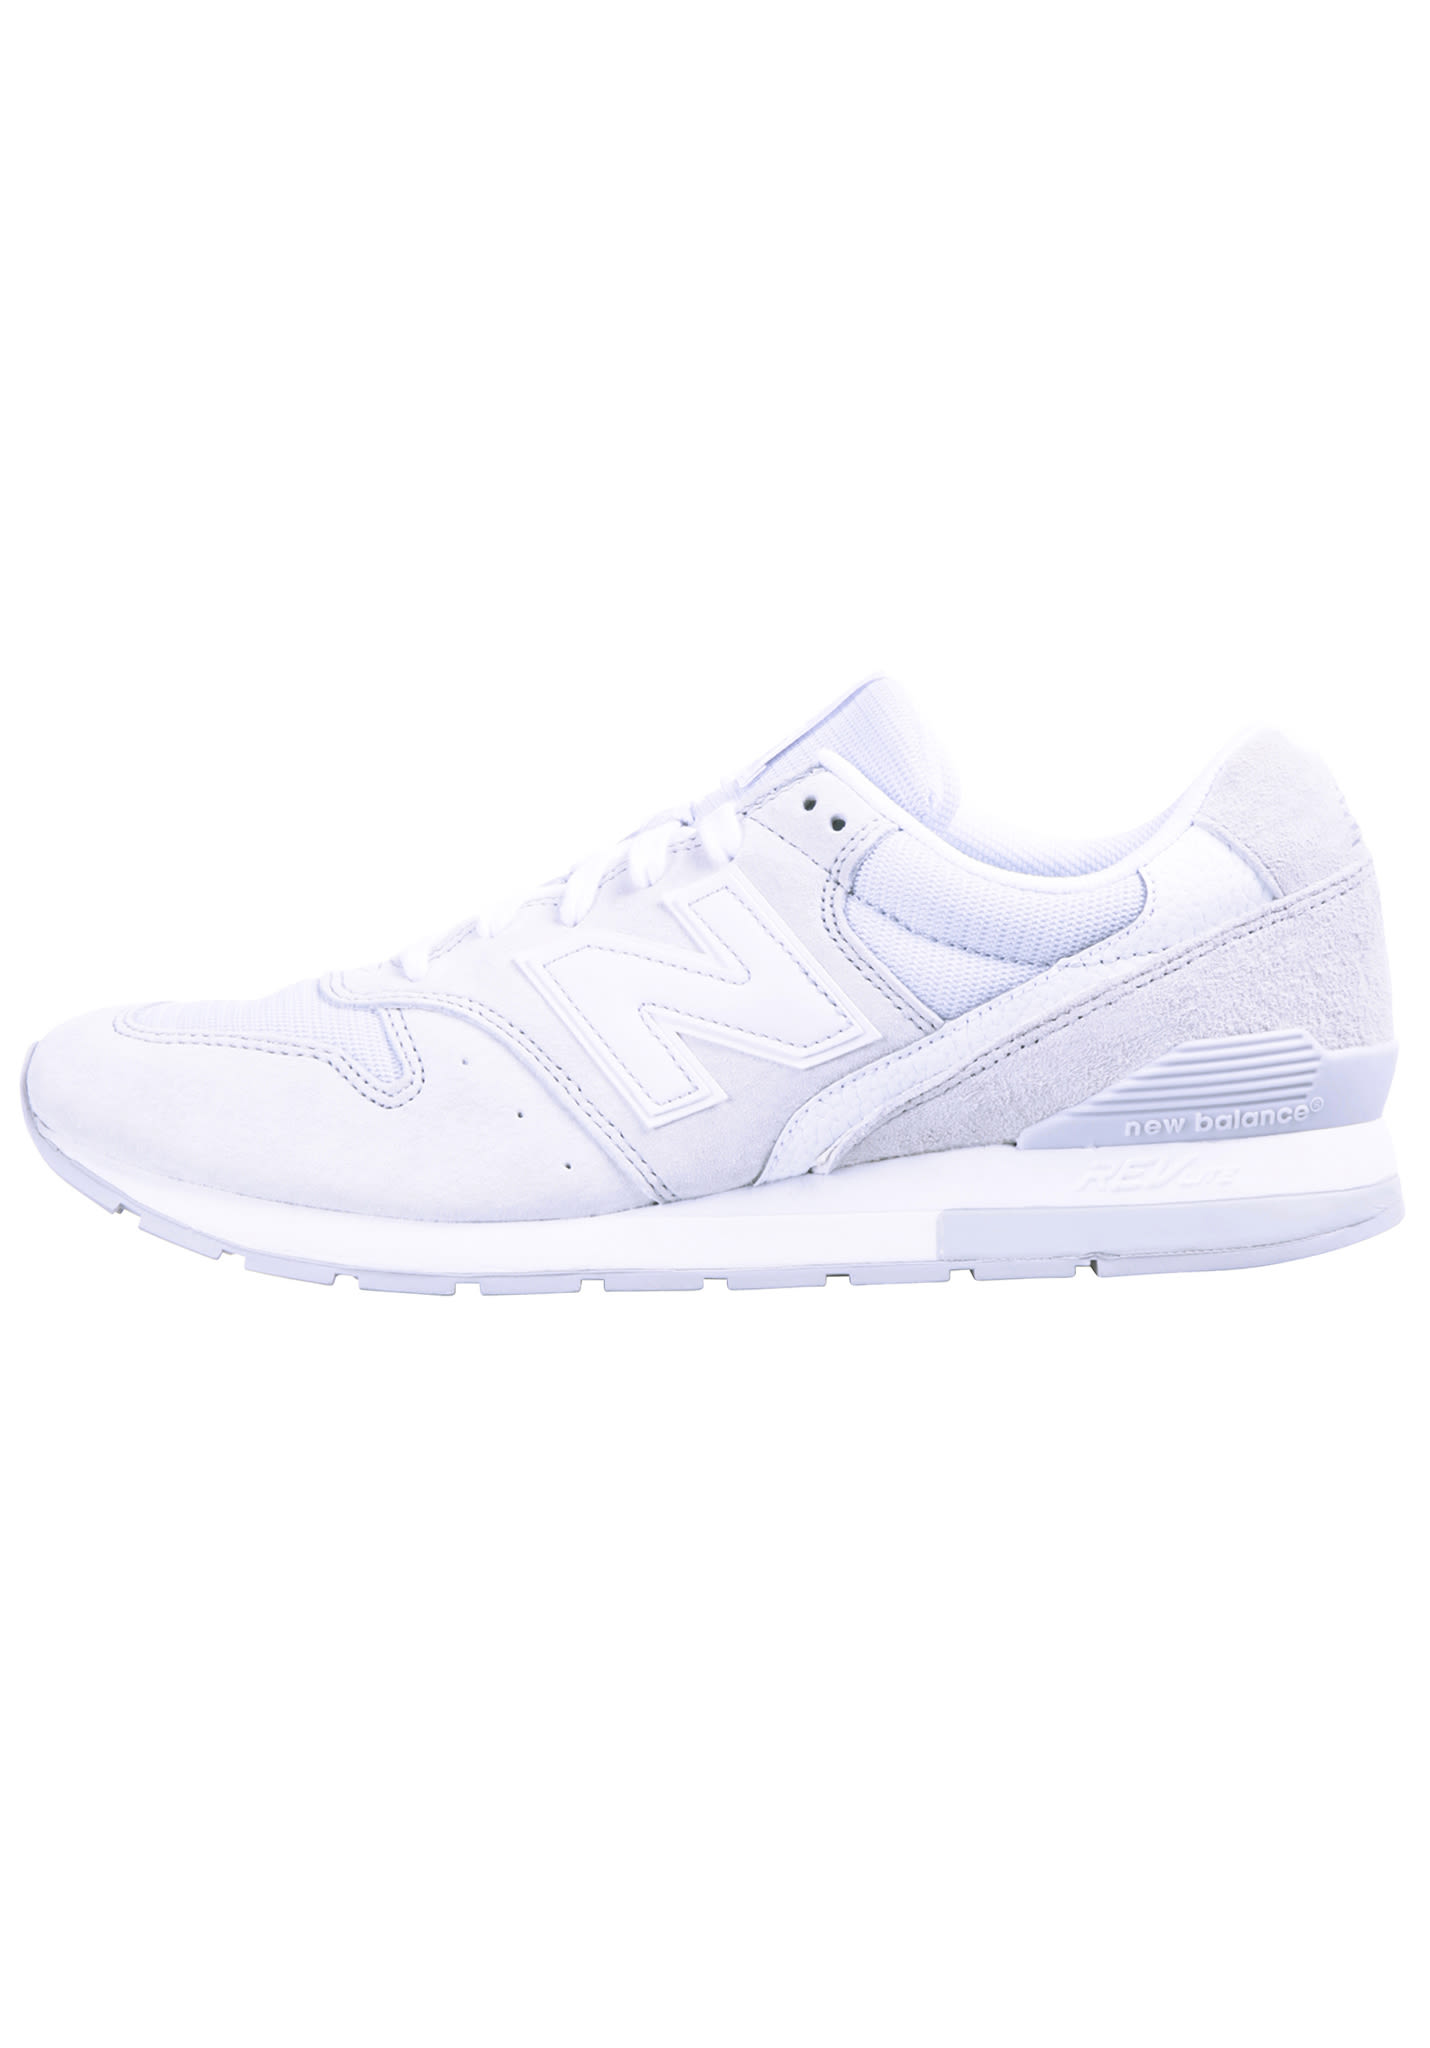 New Balance - Deportivo Mrl420mw Hombre - Color: Blue (40) JqEmJhp